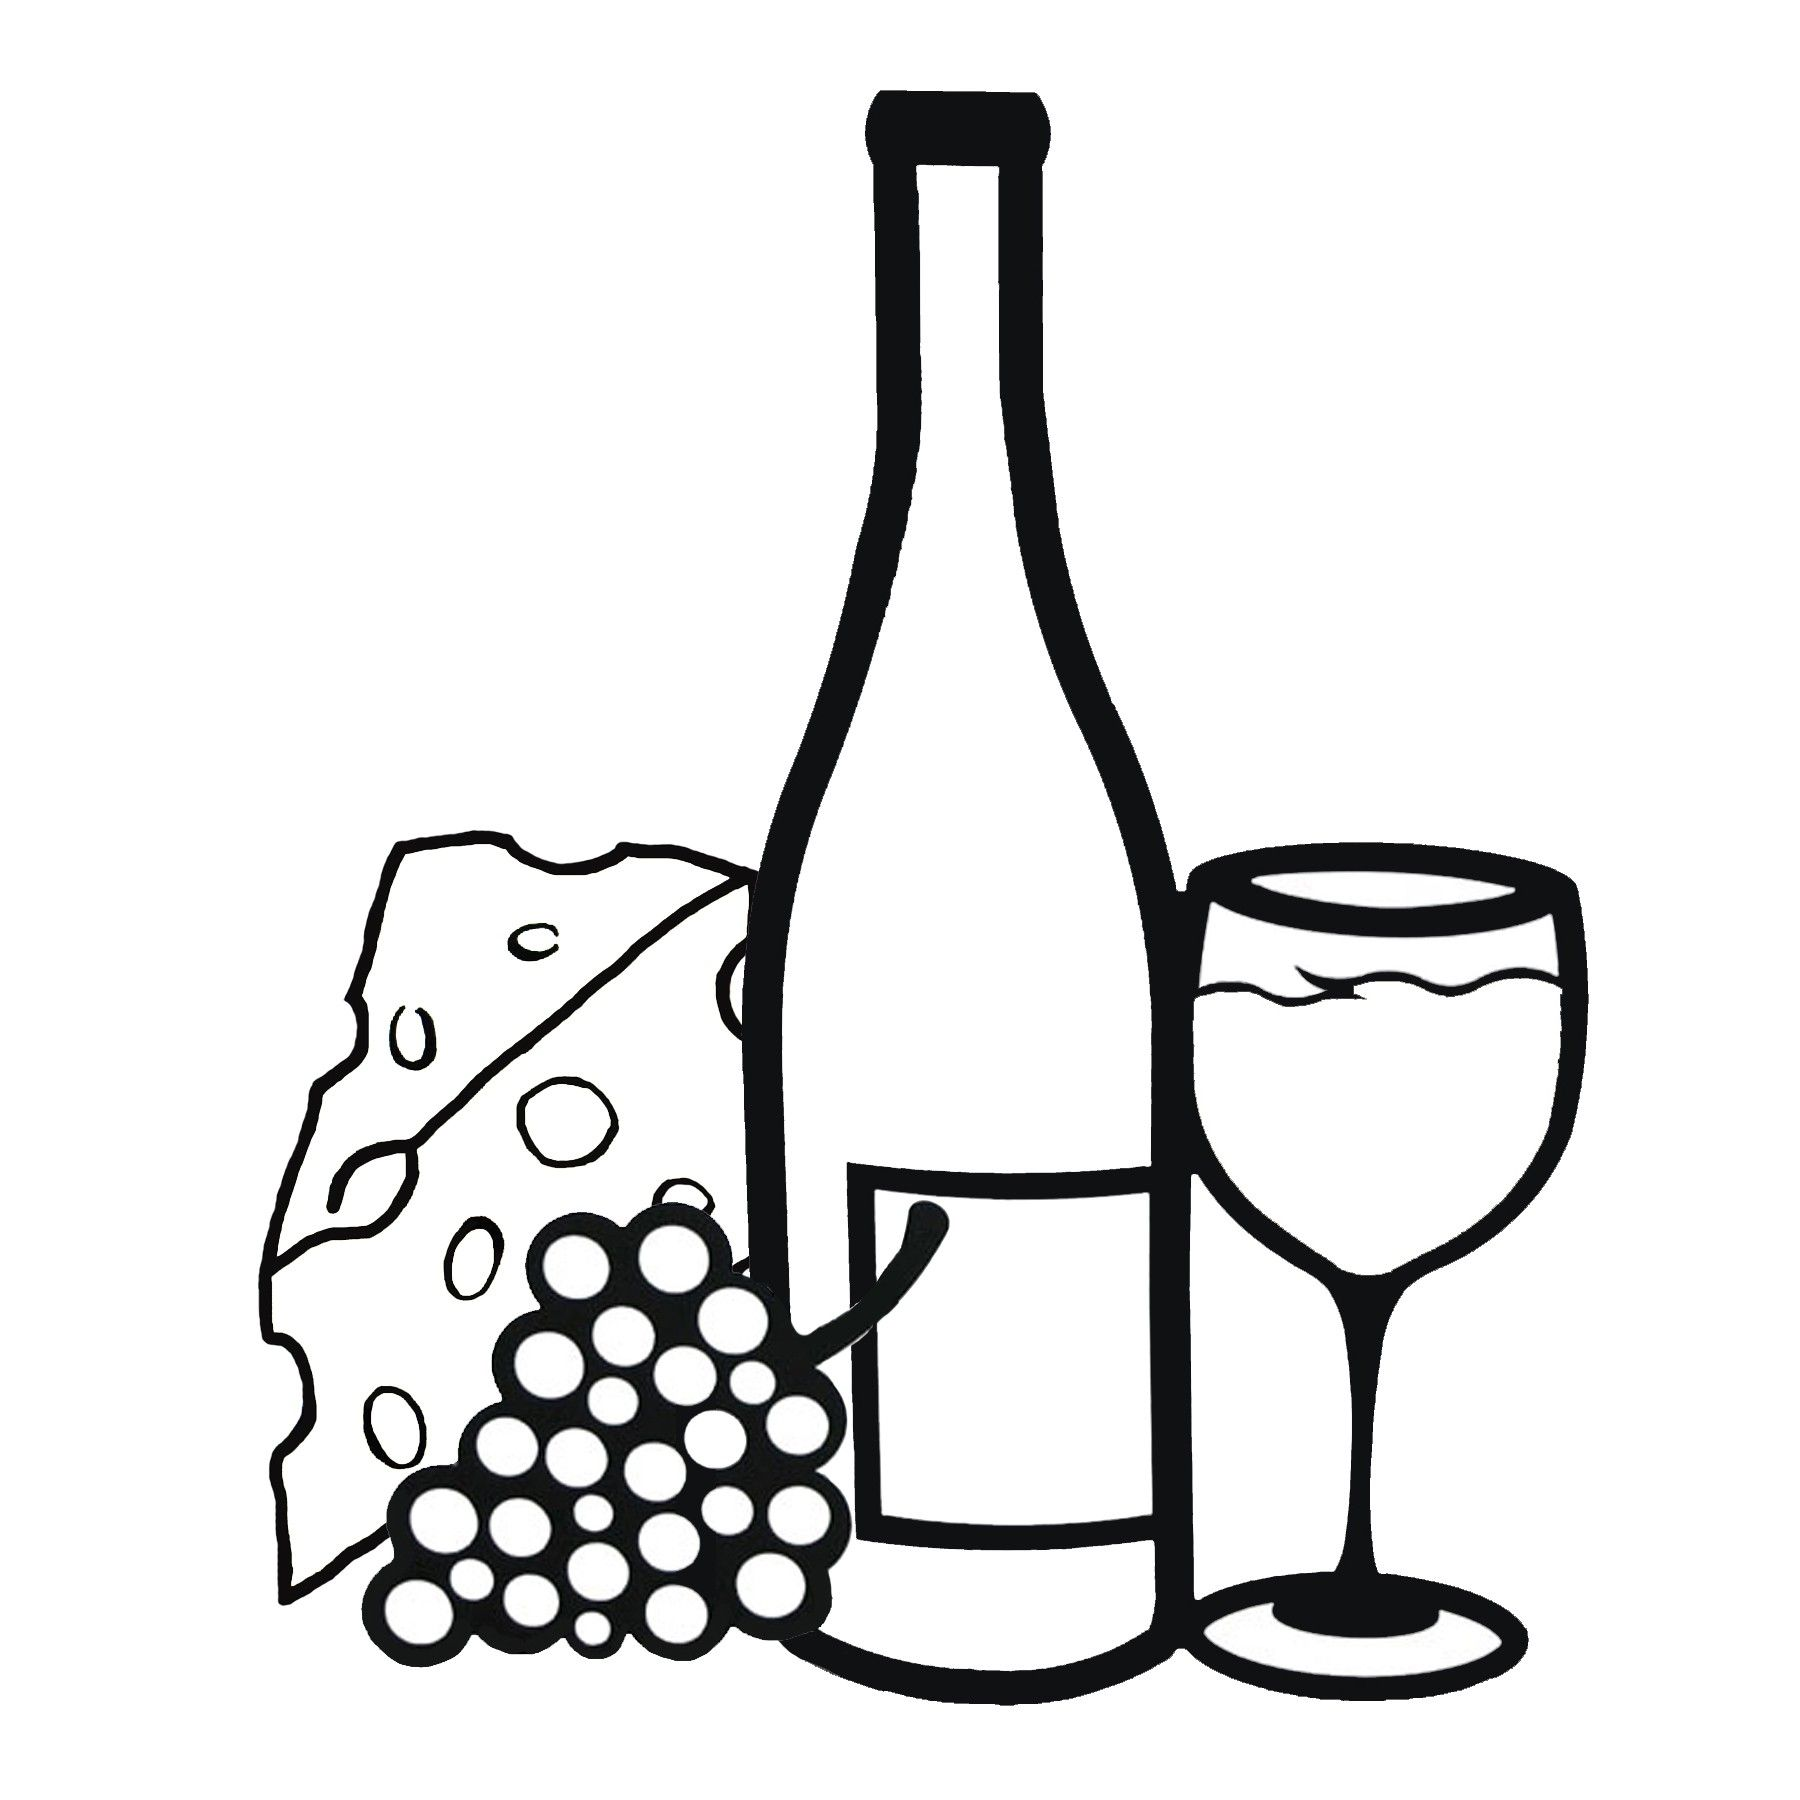 Images For > Wine Glass And Grapes Clipart.